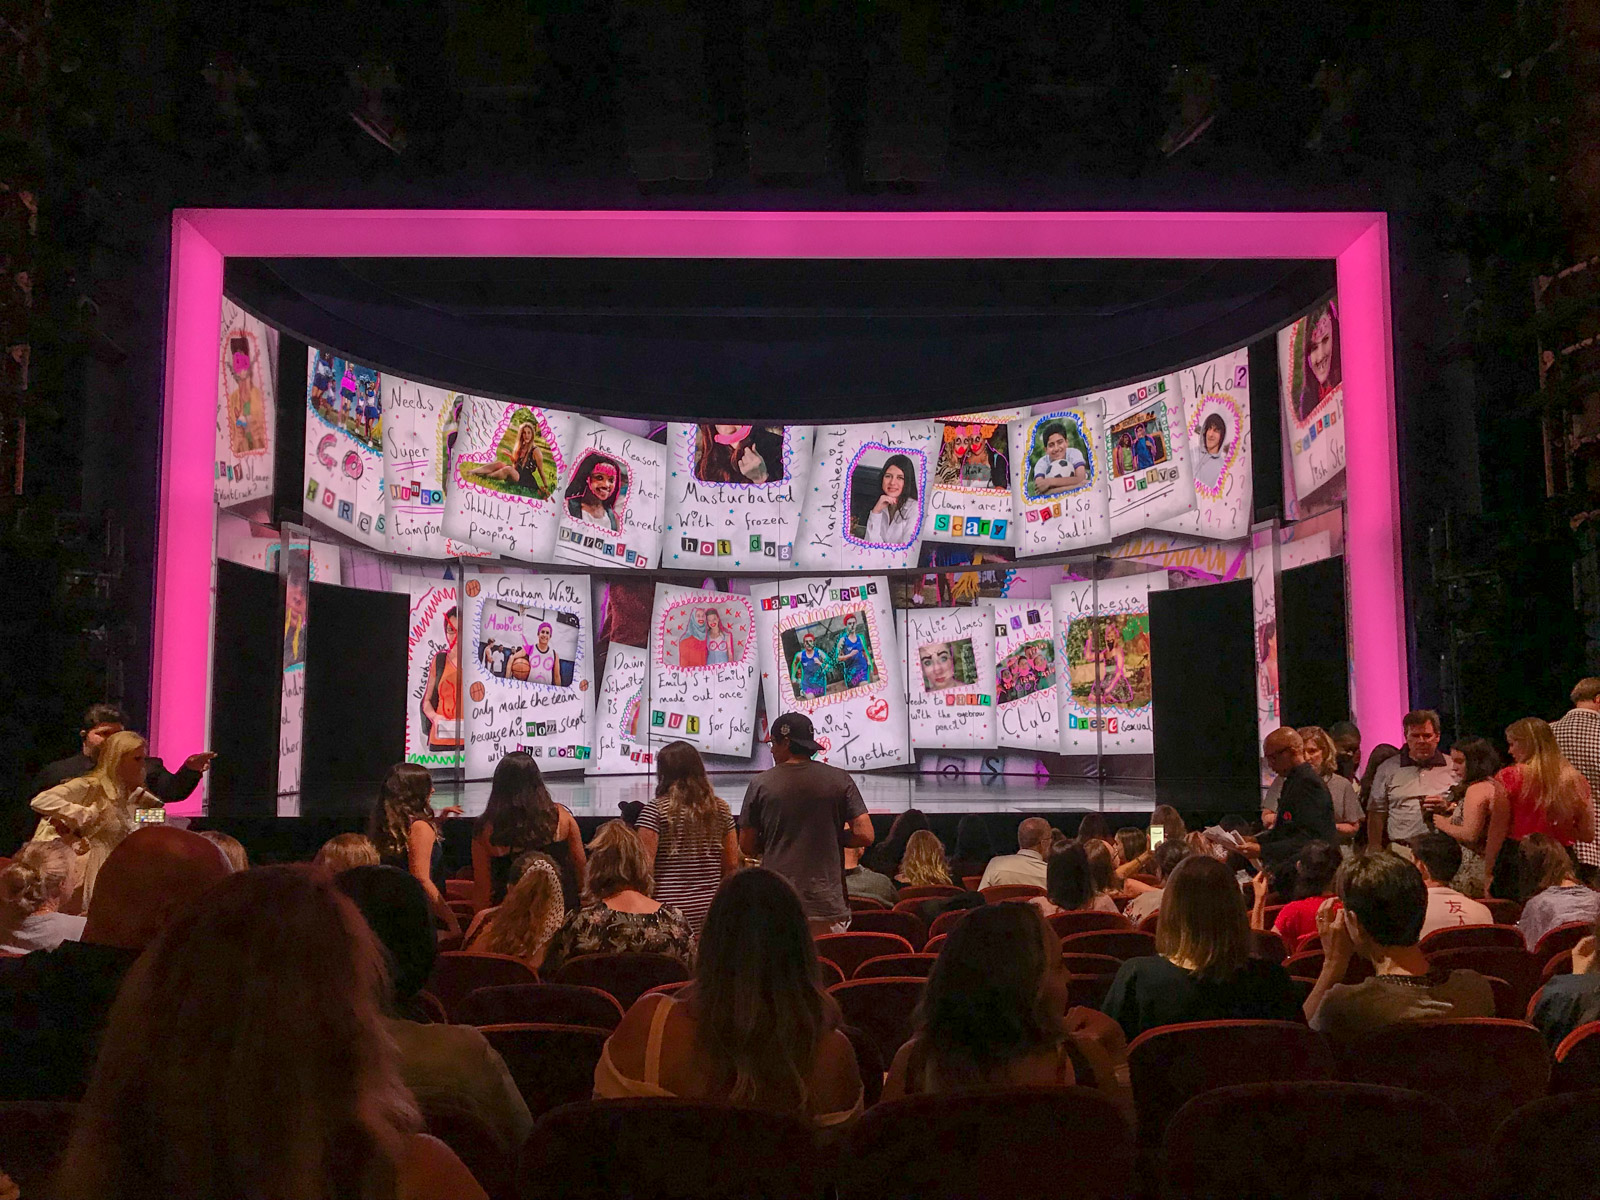 The inside of a theatre with audience members both sitting and making their way to their seats. The stage is ready with a digital backdrop resembling a scrapbook of photos and comments